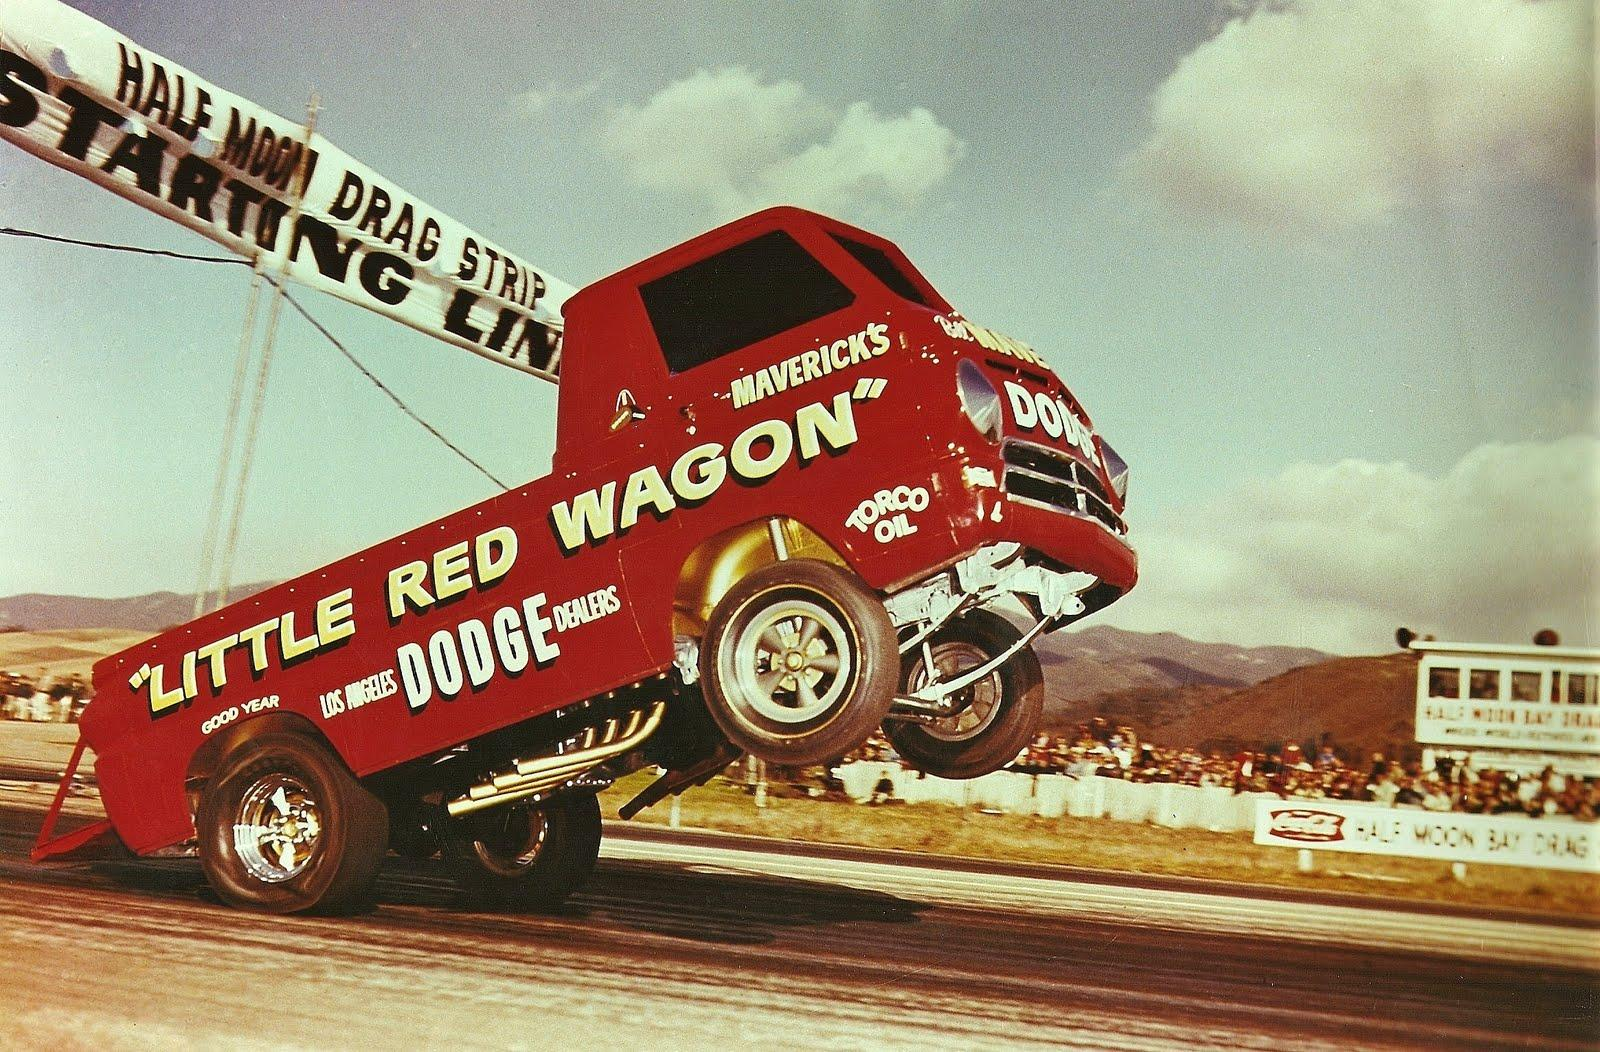 DODGE Little Red Wagon full wheelstand [05] BIG clear pic.jpg